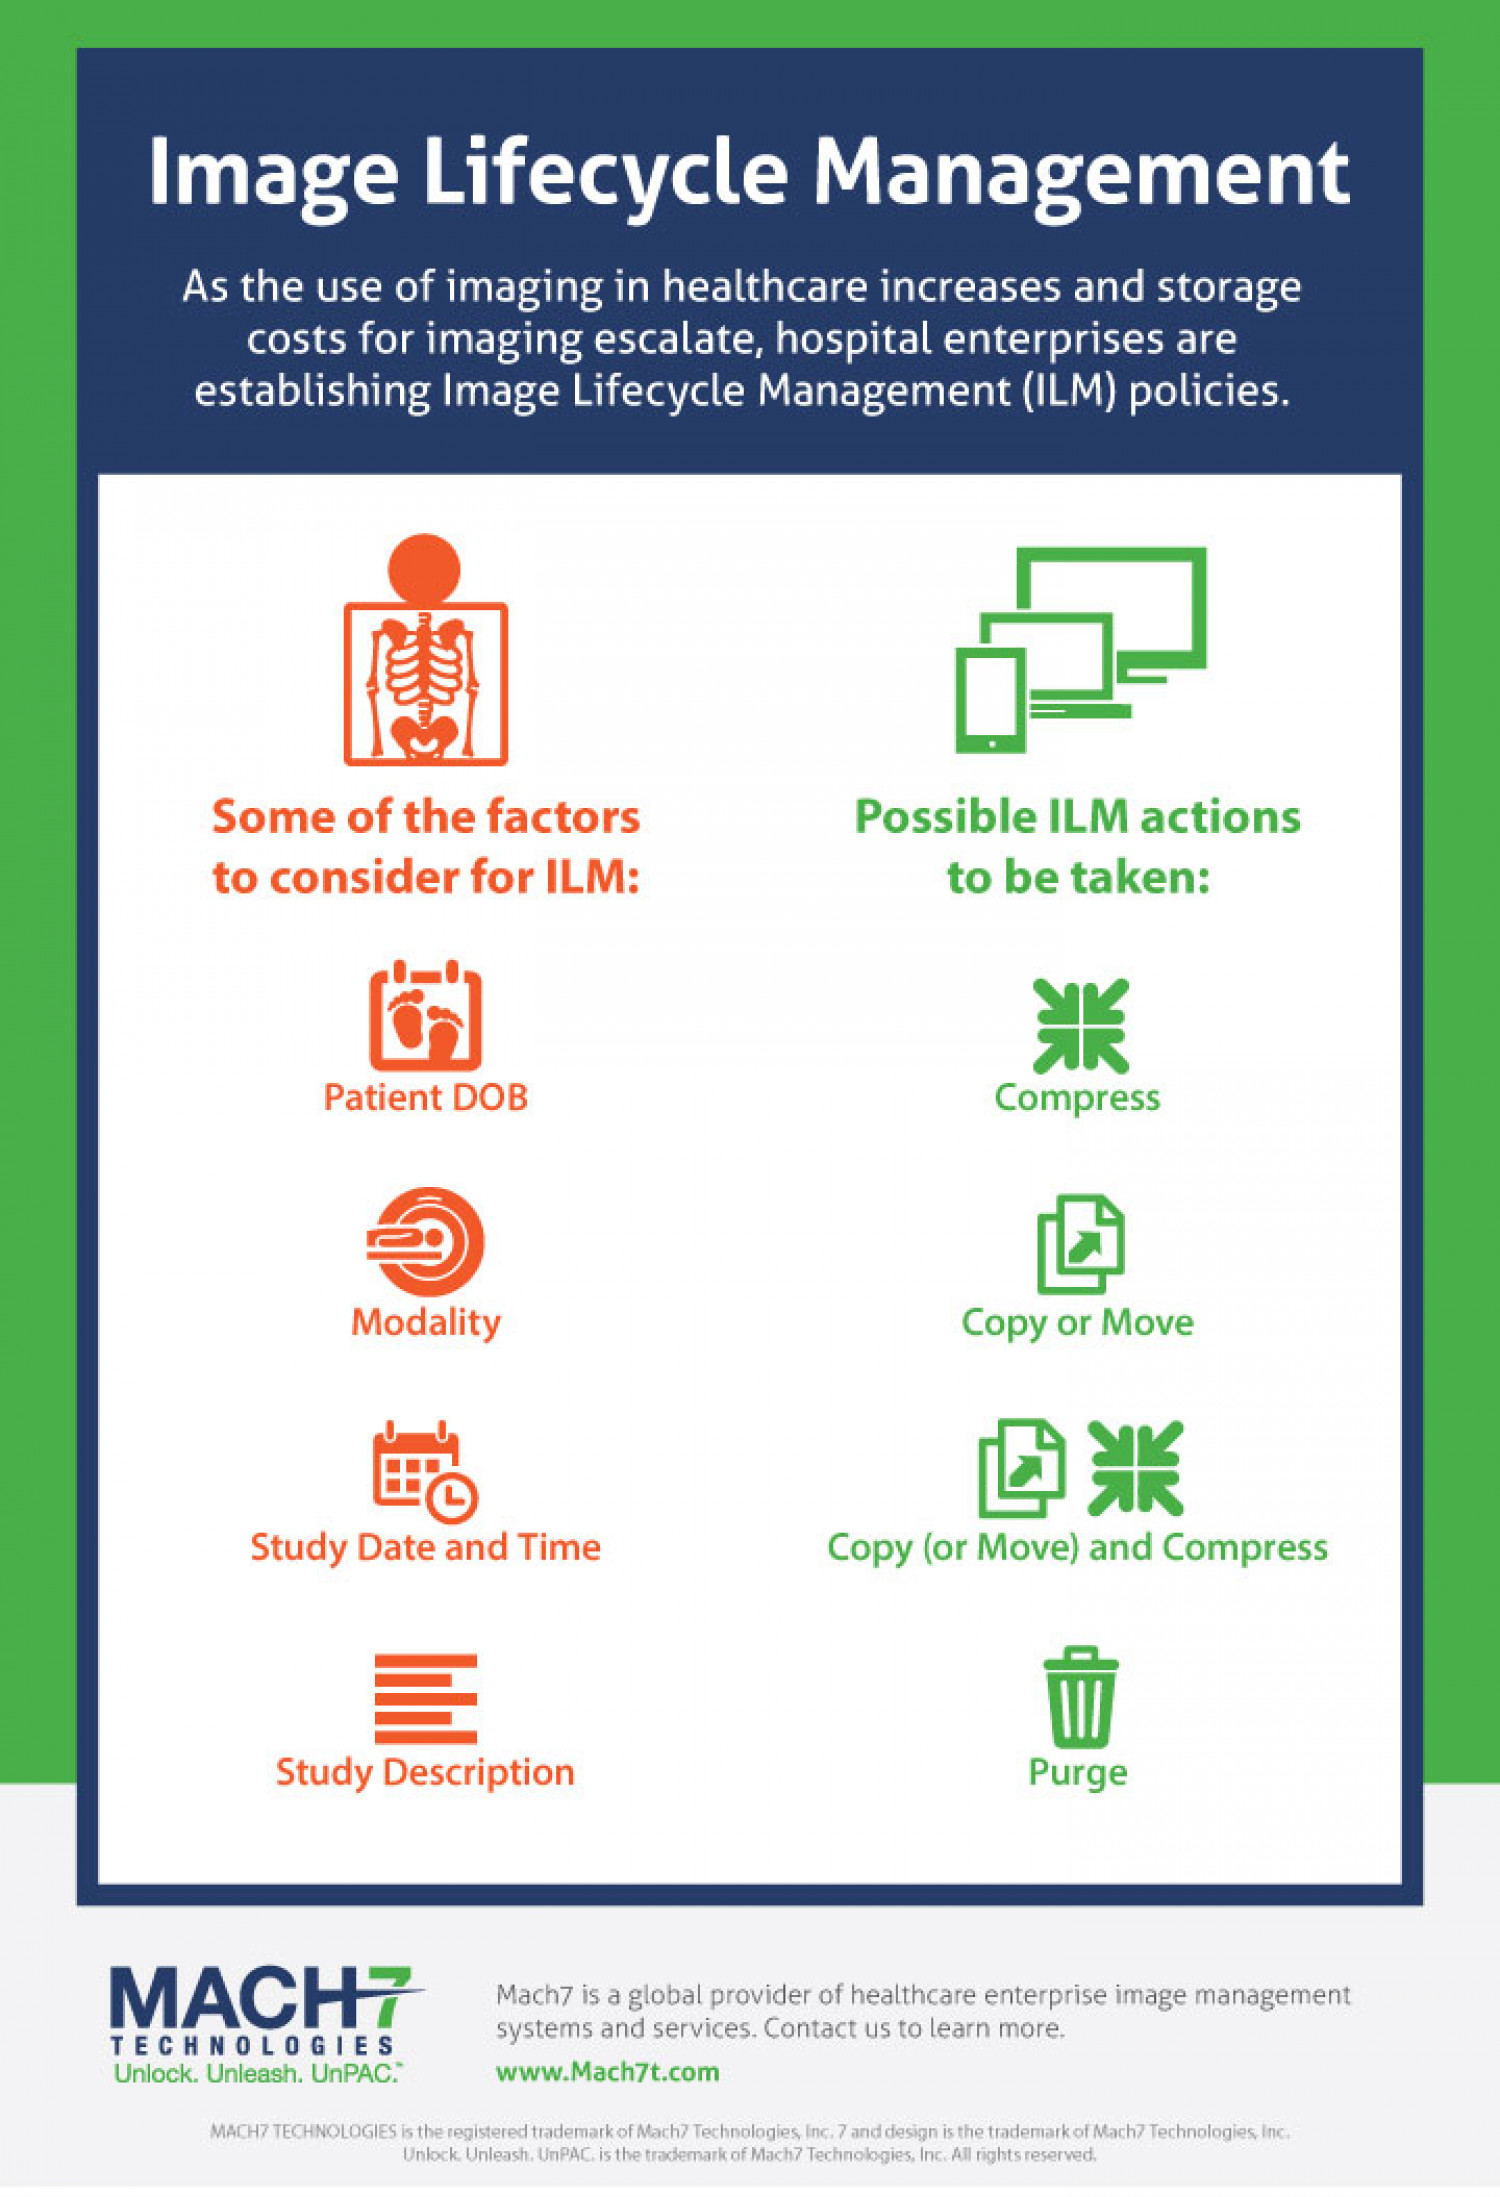 Image Lifecycle Management Infographic